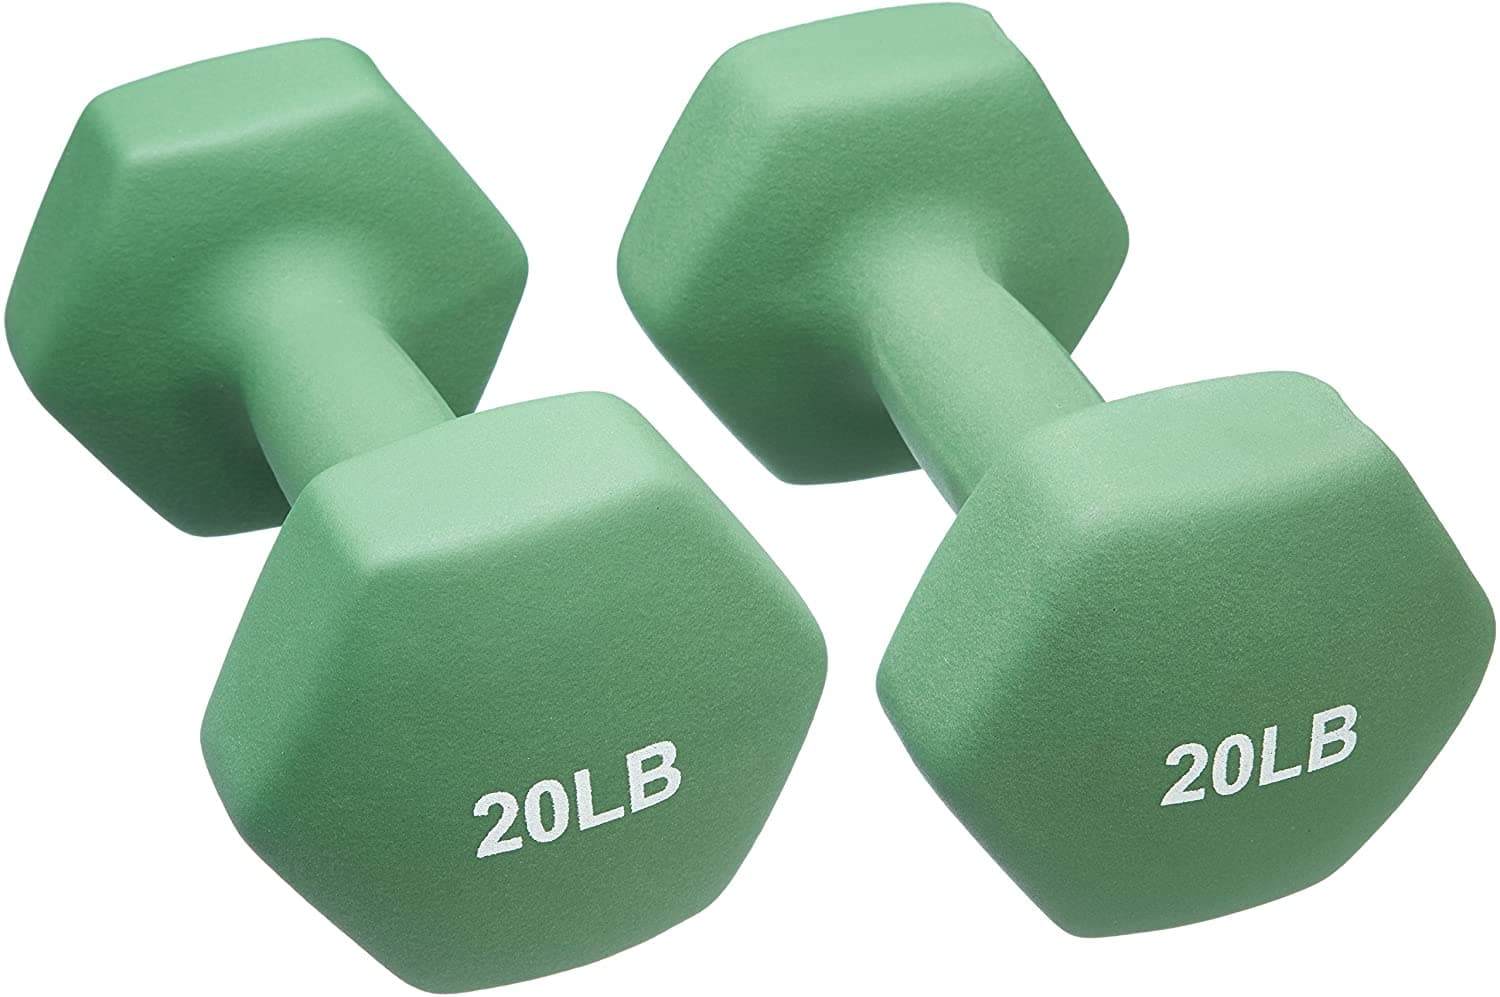 AmazonBasics Exercise Weights: Pair of 20lb Dumbells $53.49, 60lb Kettlebell $69.99 & Many More - FS w/ Prime